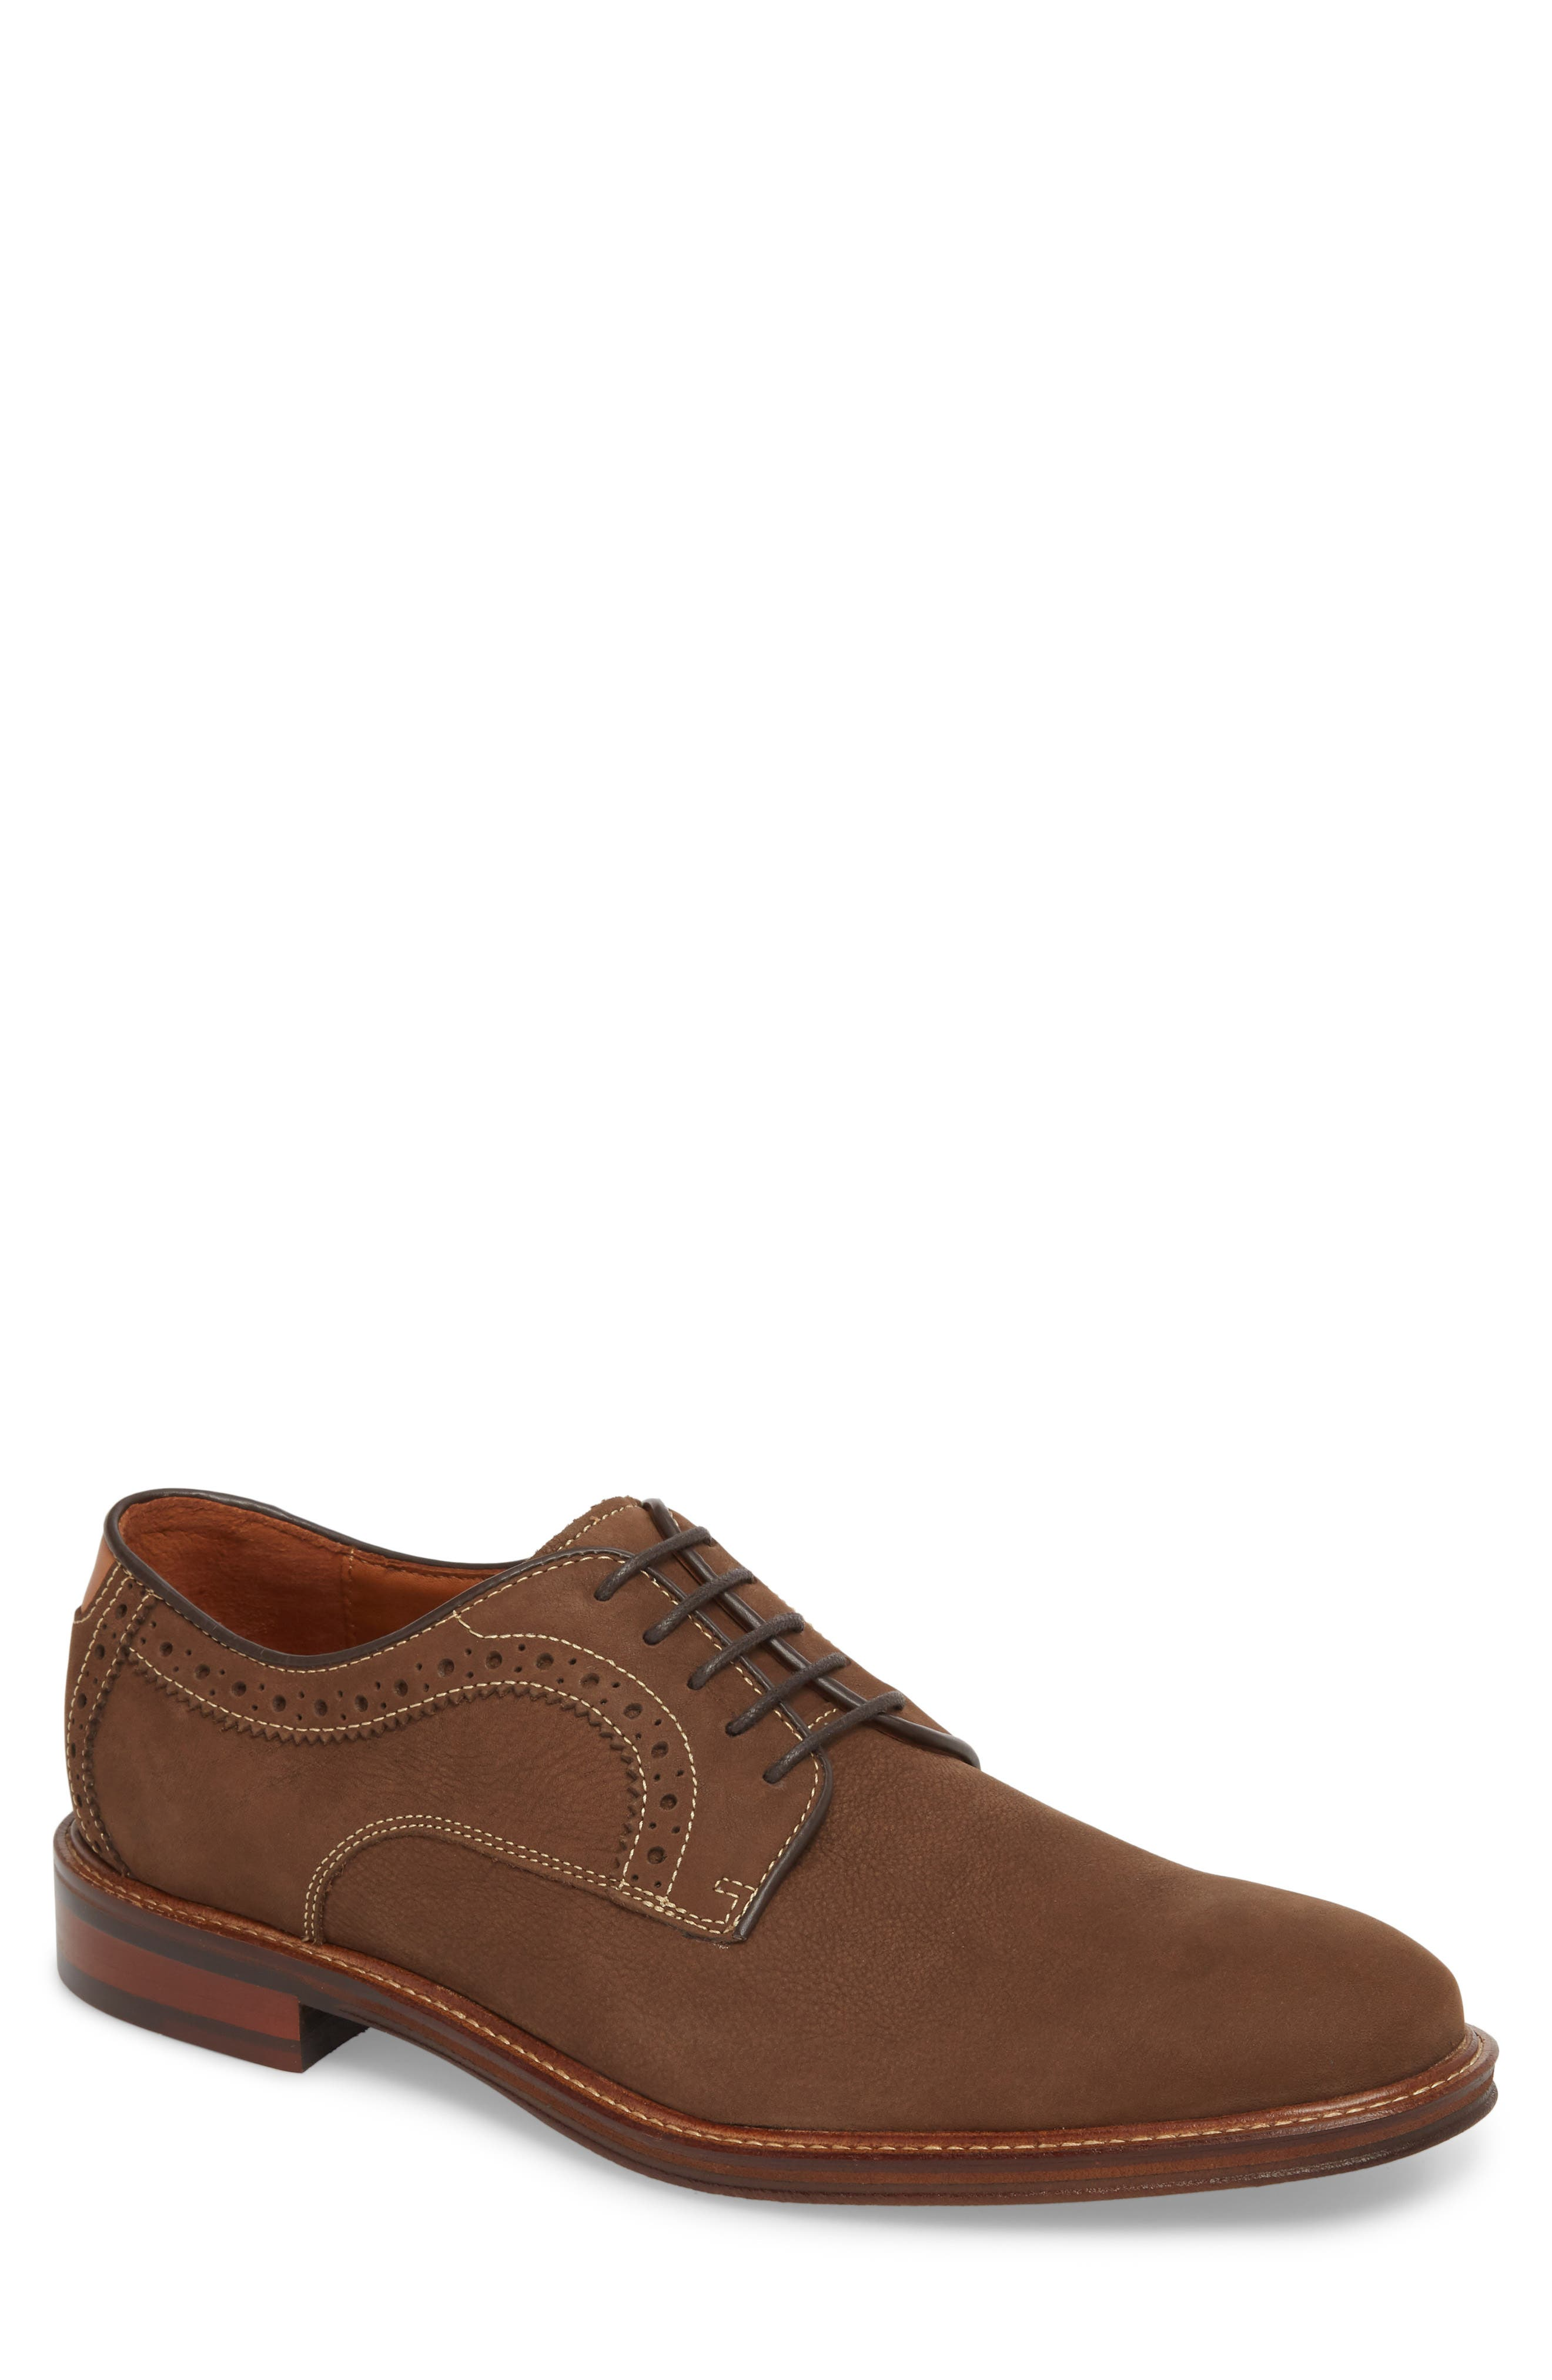 Warner Plain Toe Derby,                             Main thumbnail 1, color,                             BROWN NUBUCK